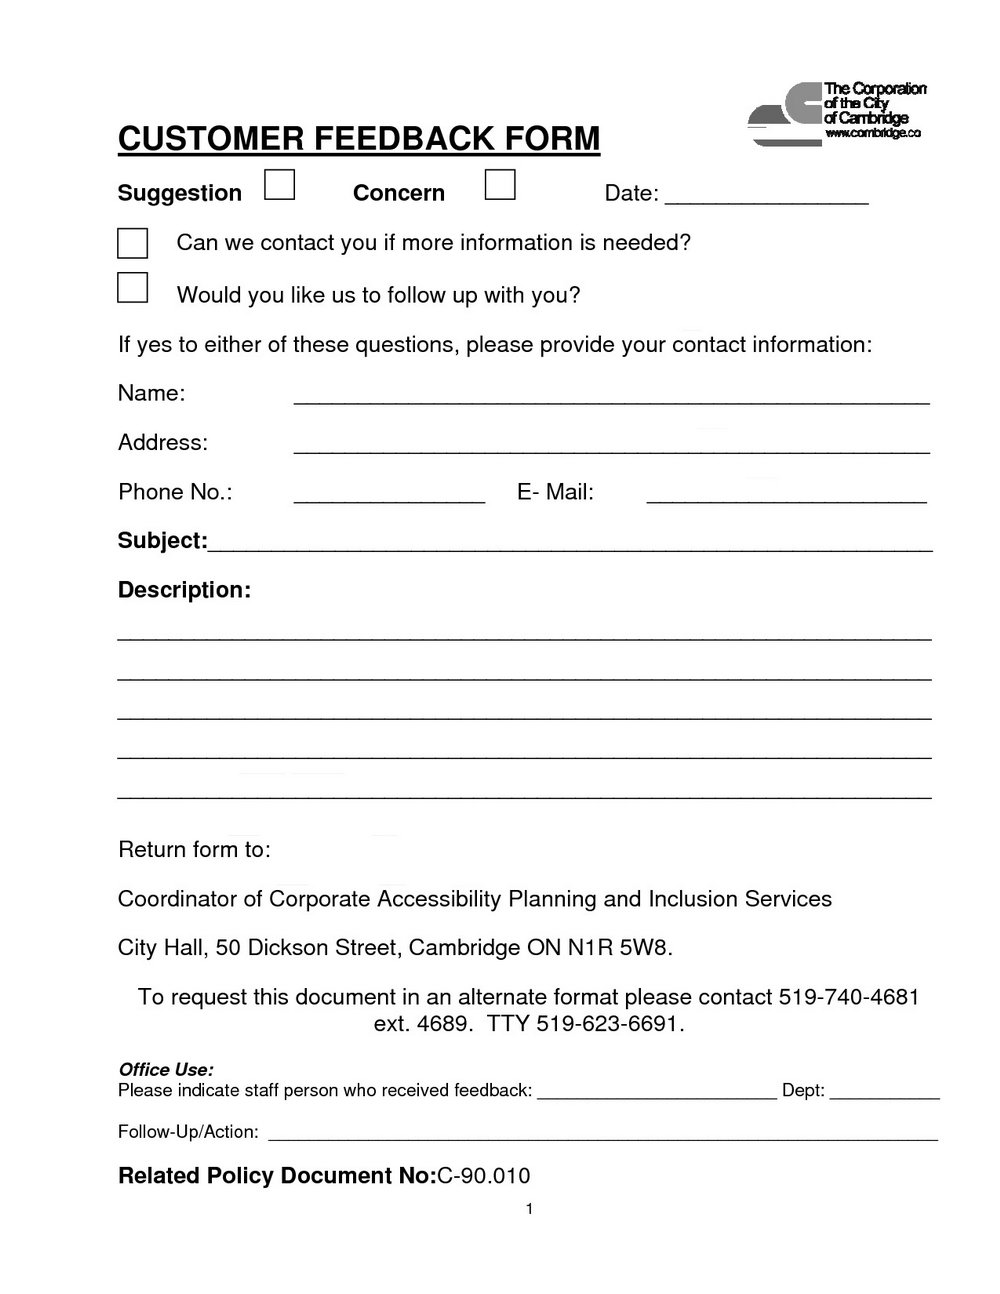 Feedback Form For Housekeeping Services